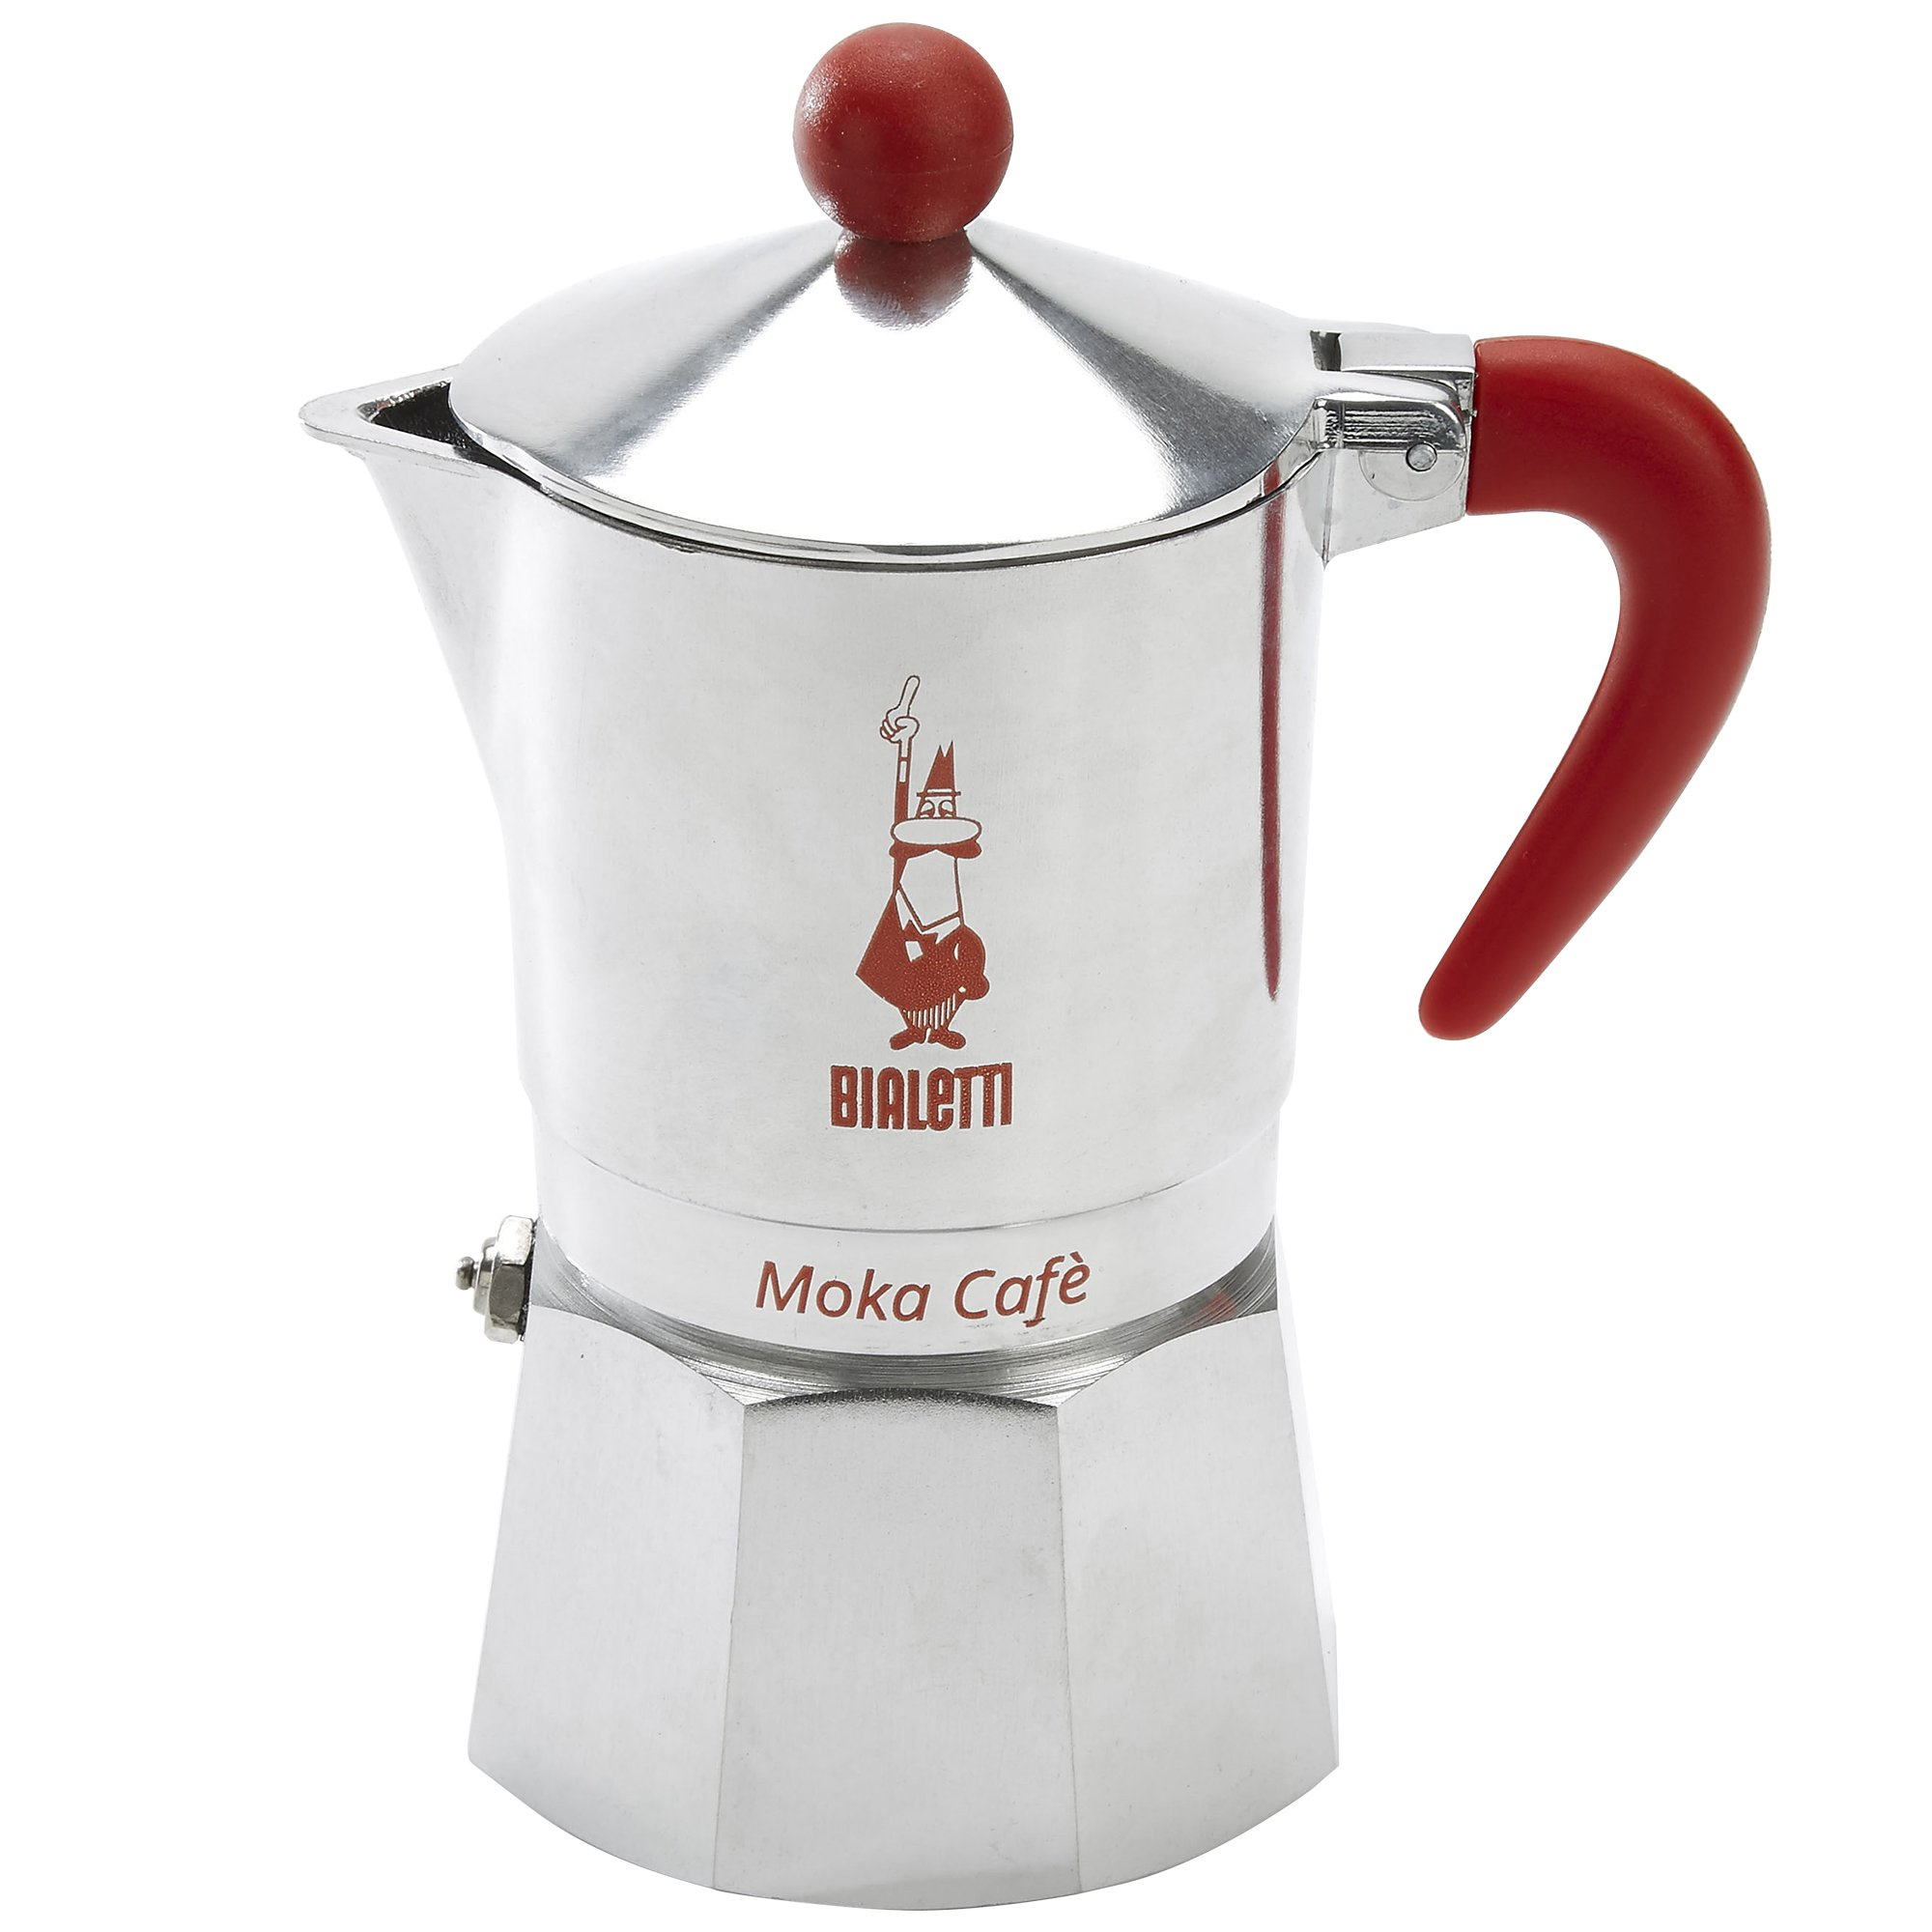 Bialetti, 06786, Moka Cafe 3 cup, Stove Top Espresso Maker, Red